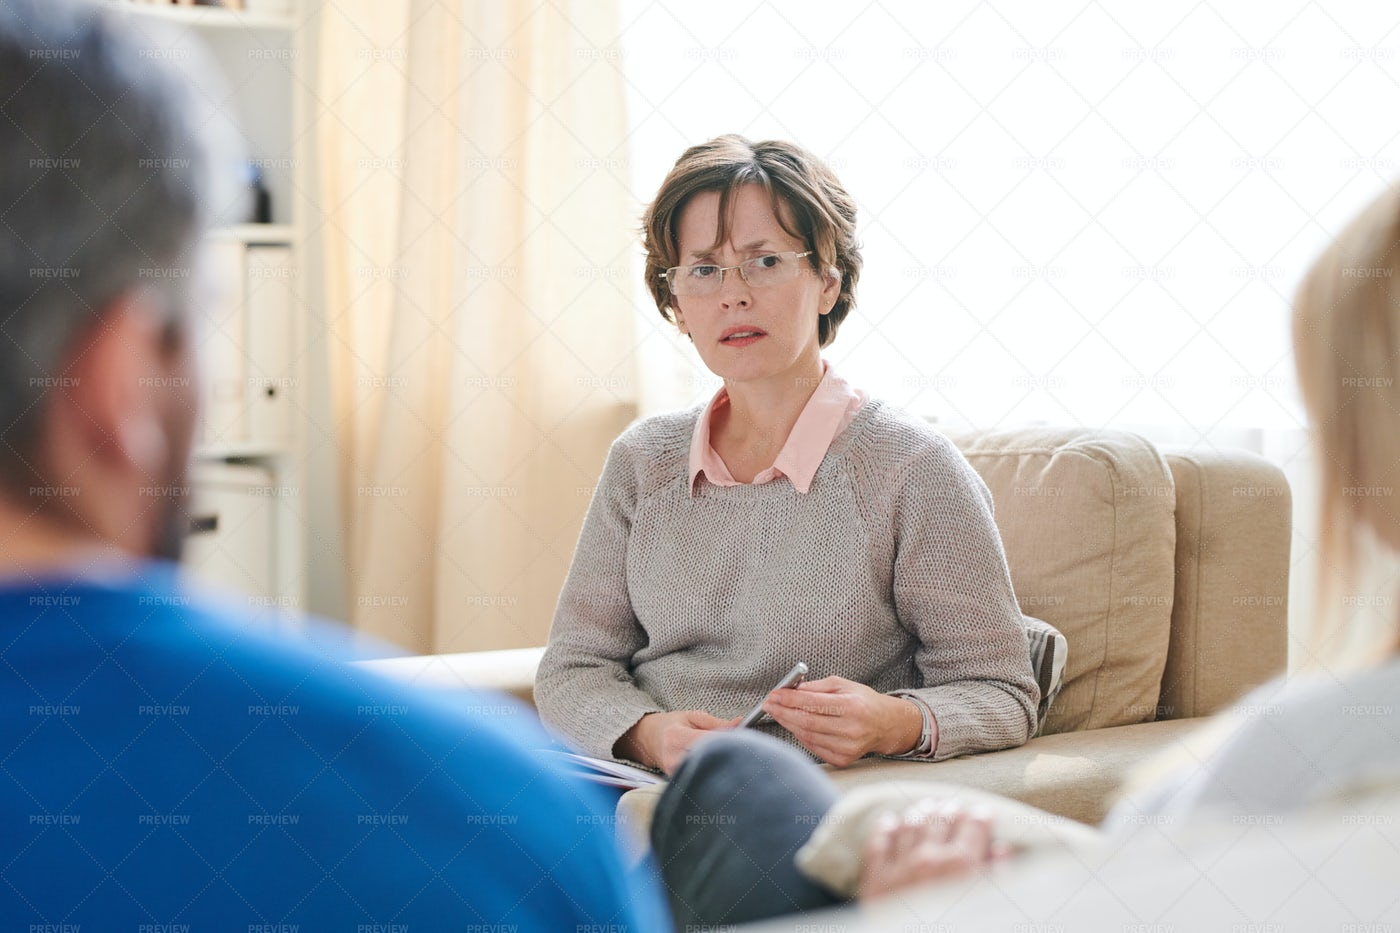 Puzzled Psychologist Listening To...: Stock Photos